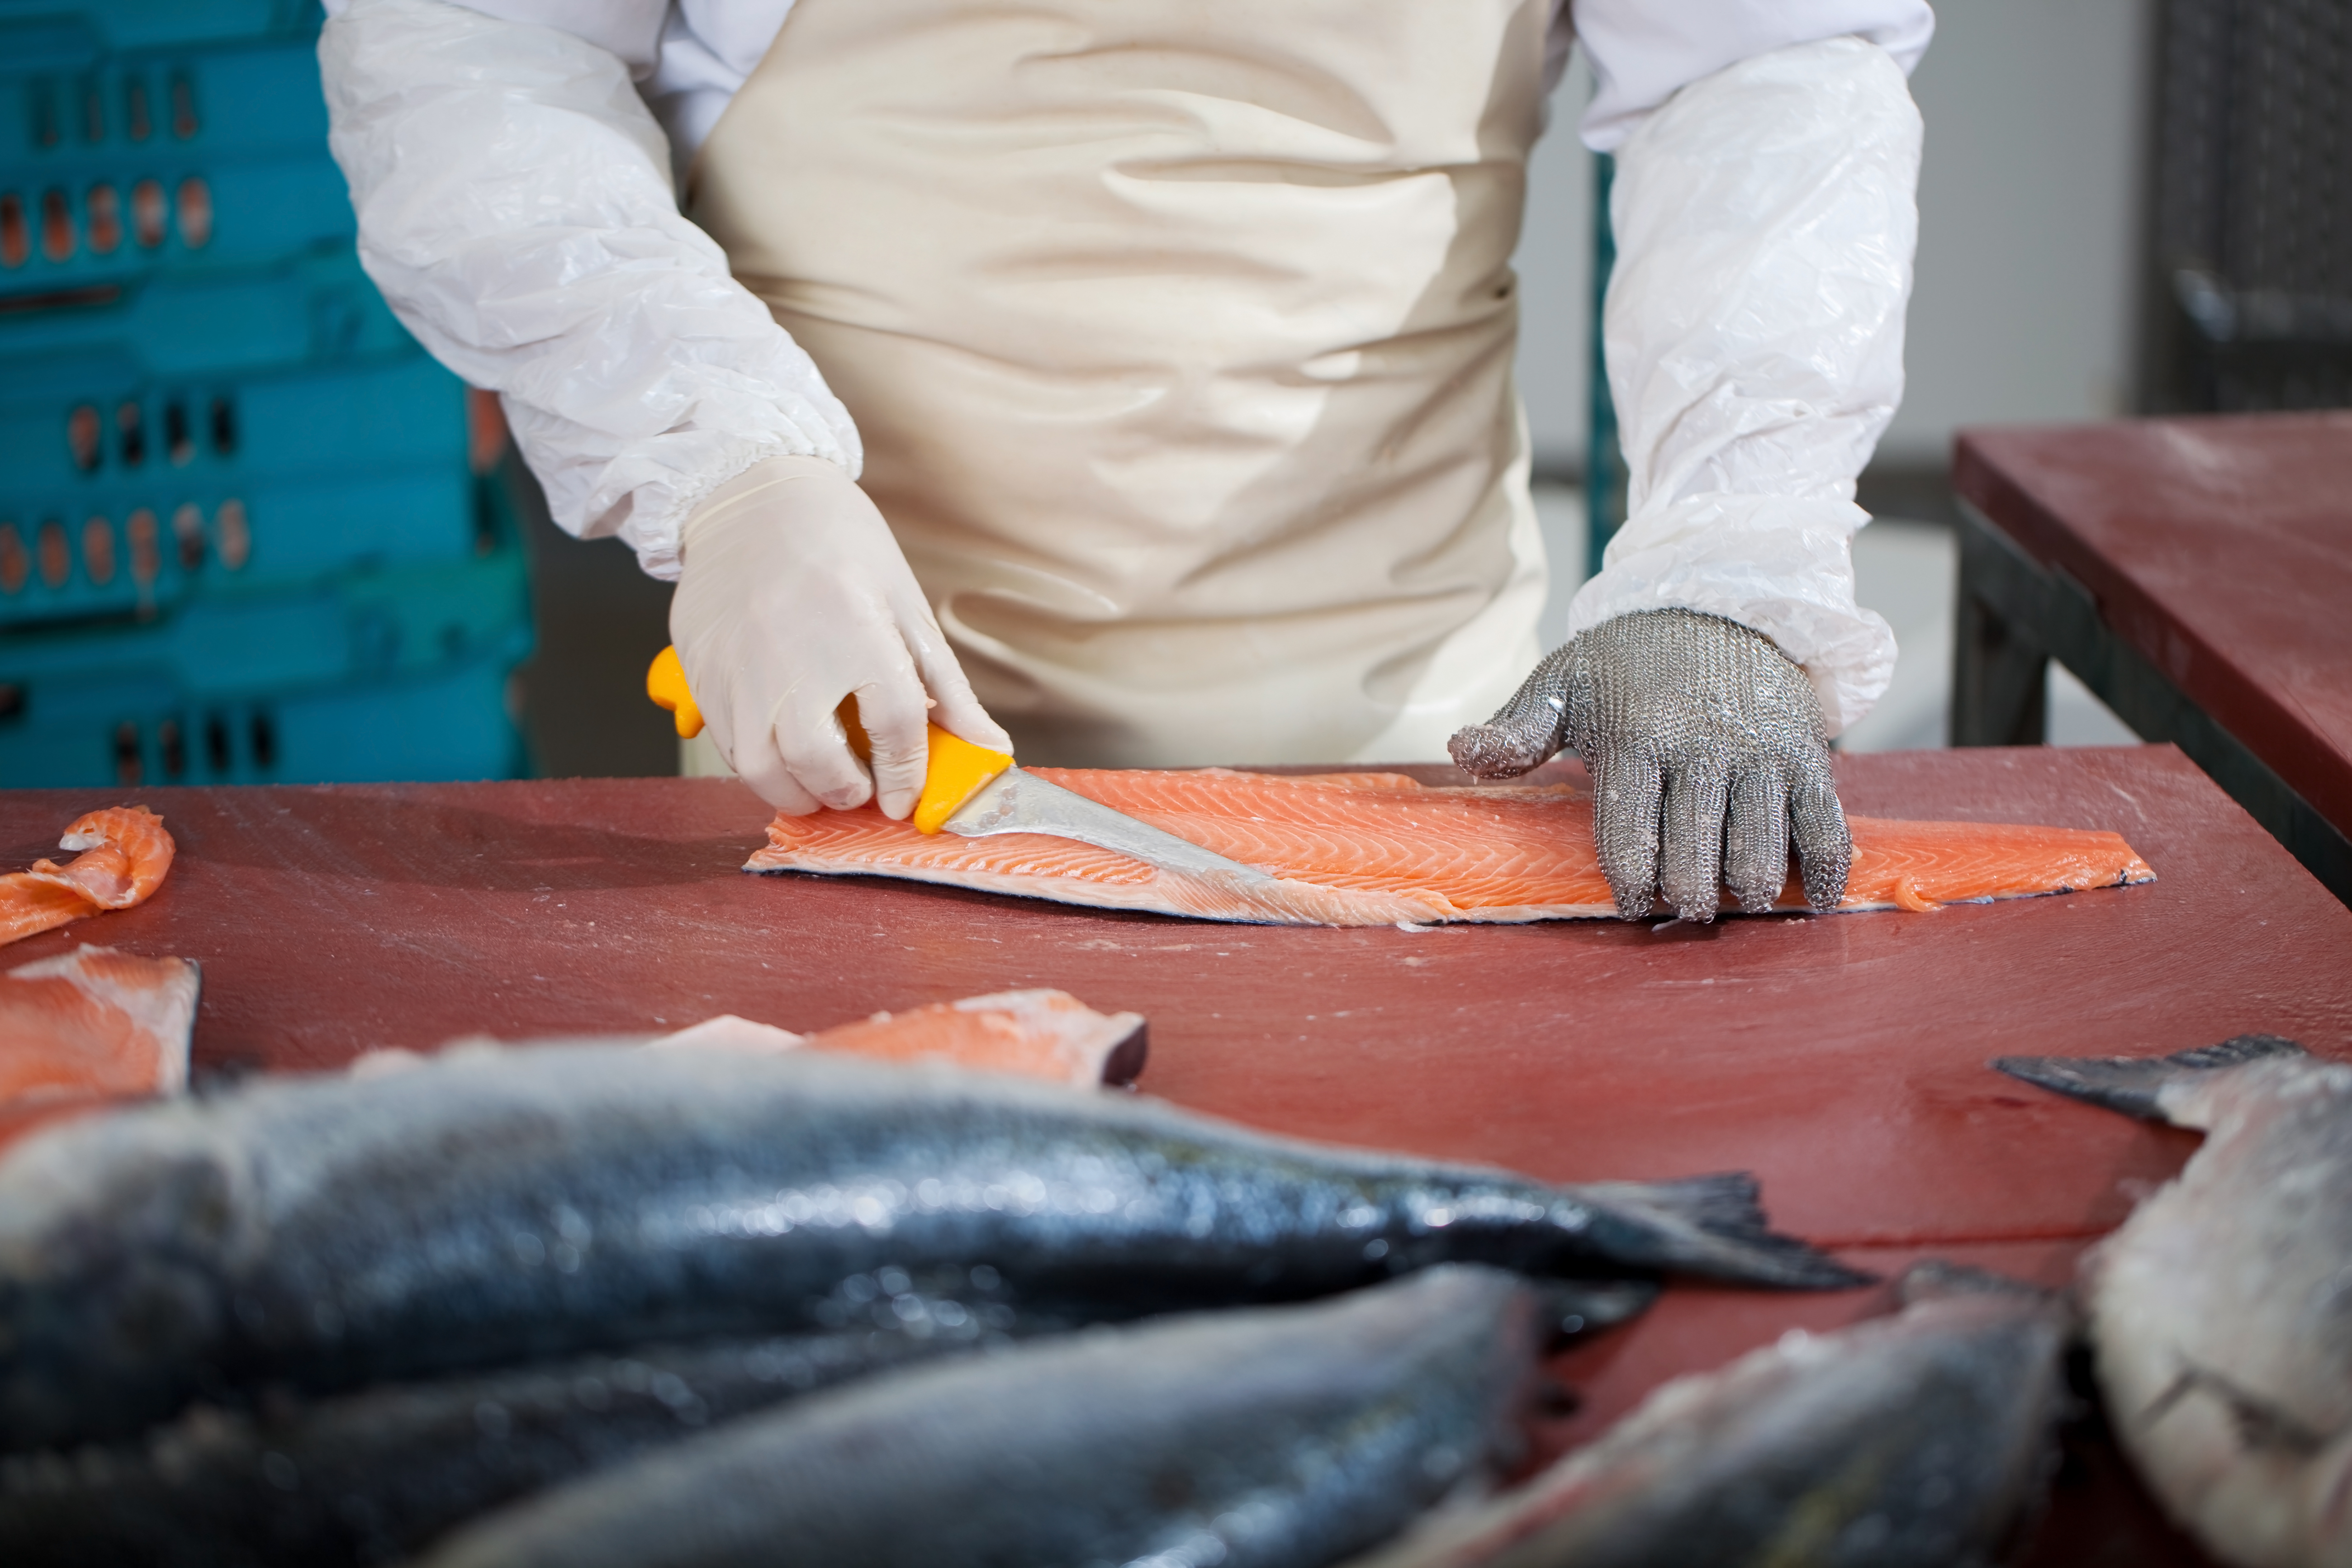 Midsection of worker slicing fish at table